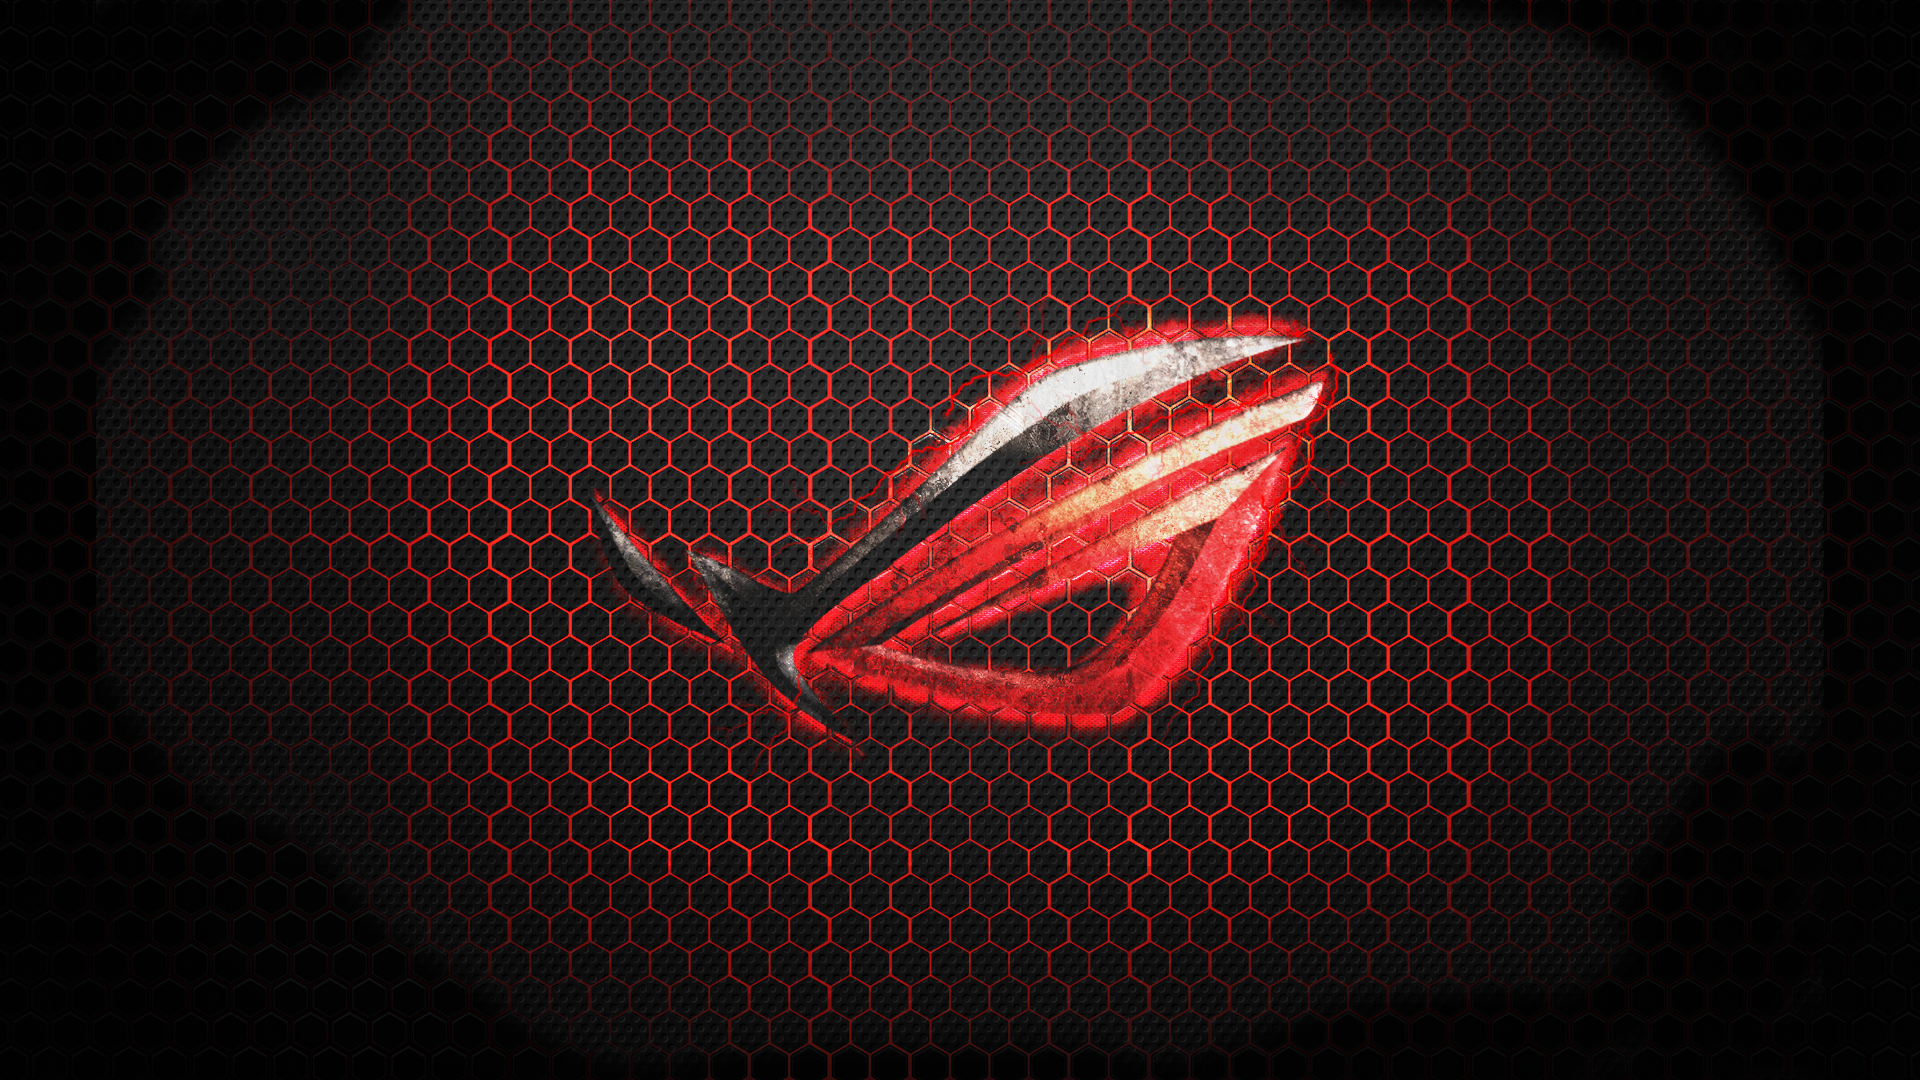 Republic Of Gamers Wallpaper ROG By FusionZGFX